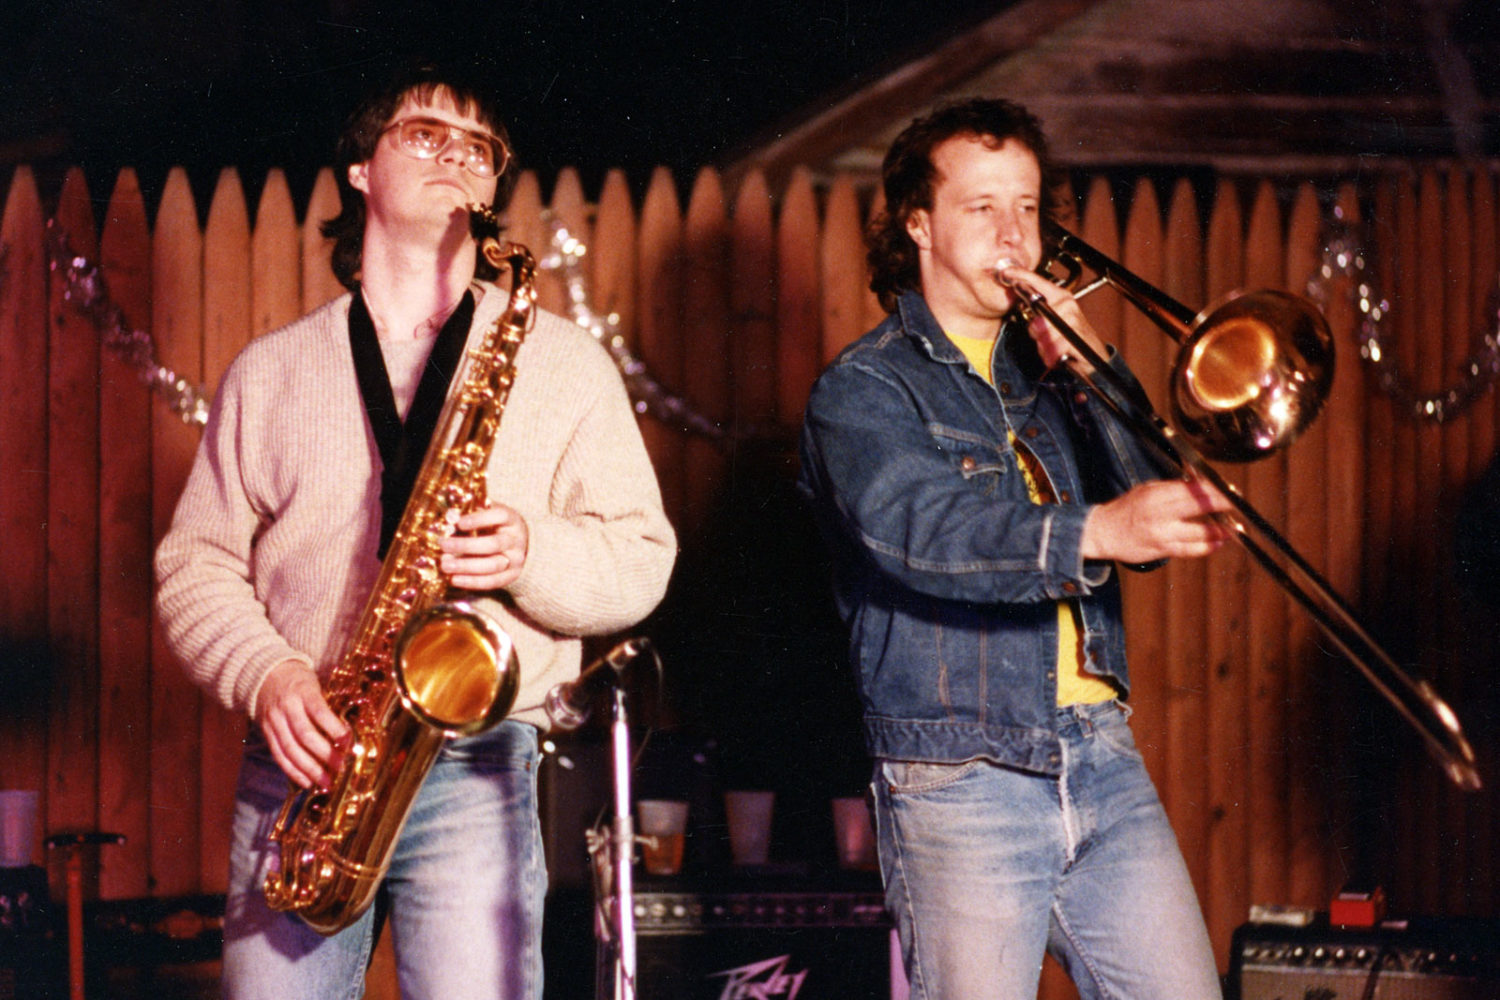 Dave McIntire and John Ebert playing horns with The Colorblind James Experience. Photo by Gary Brandt.